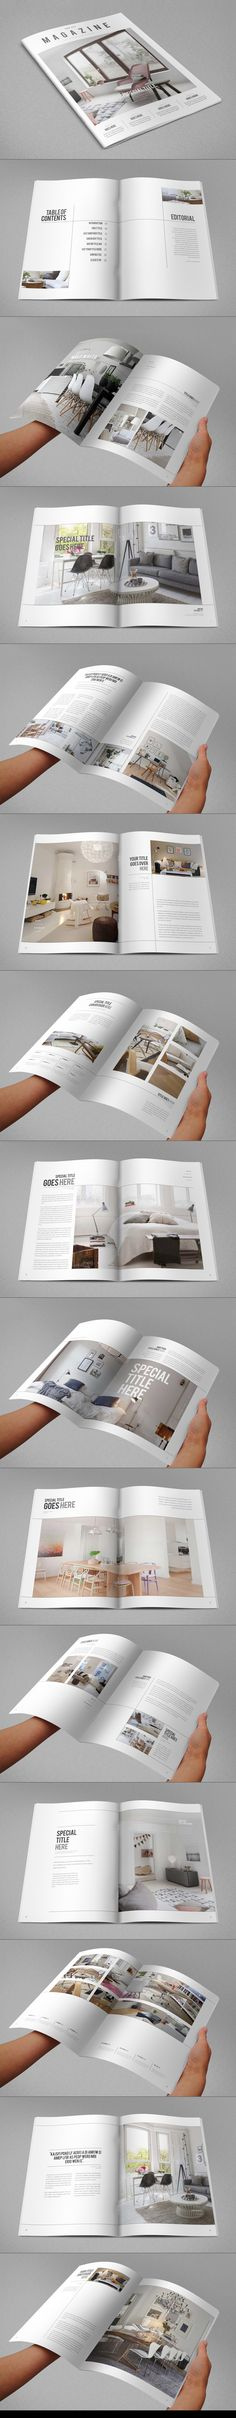 Minimal Interior Design Magazine. Download here: http://graphicriver.net/item/minimal-interior-design-magazine/9499179?ref=abradesign #magazine #template #design #editorial